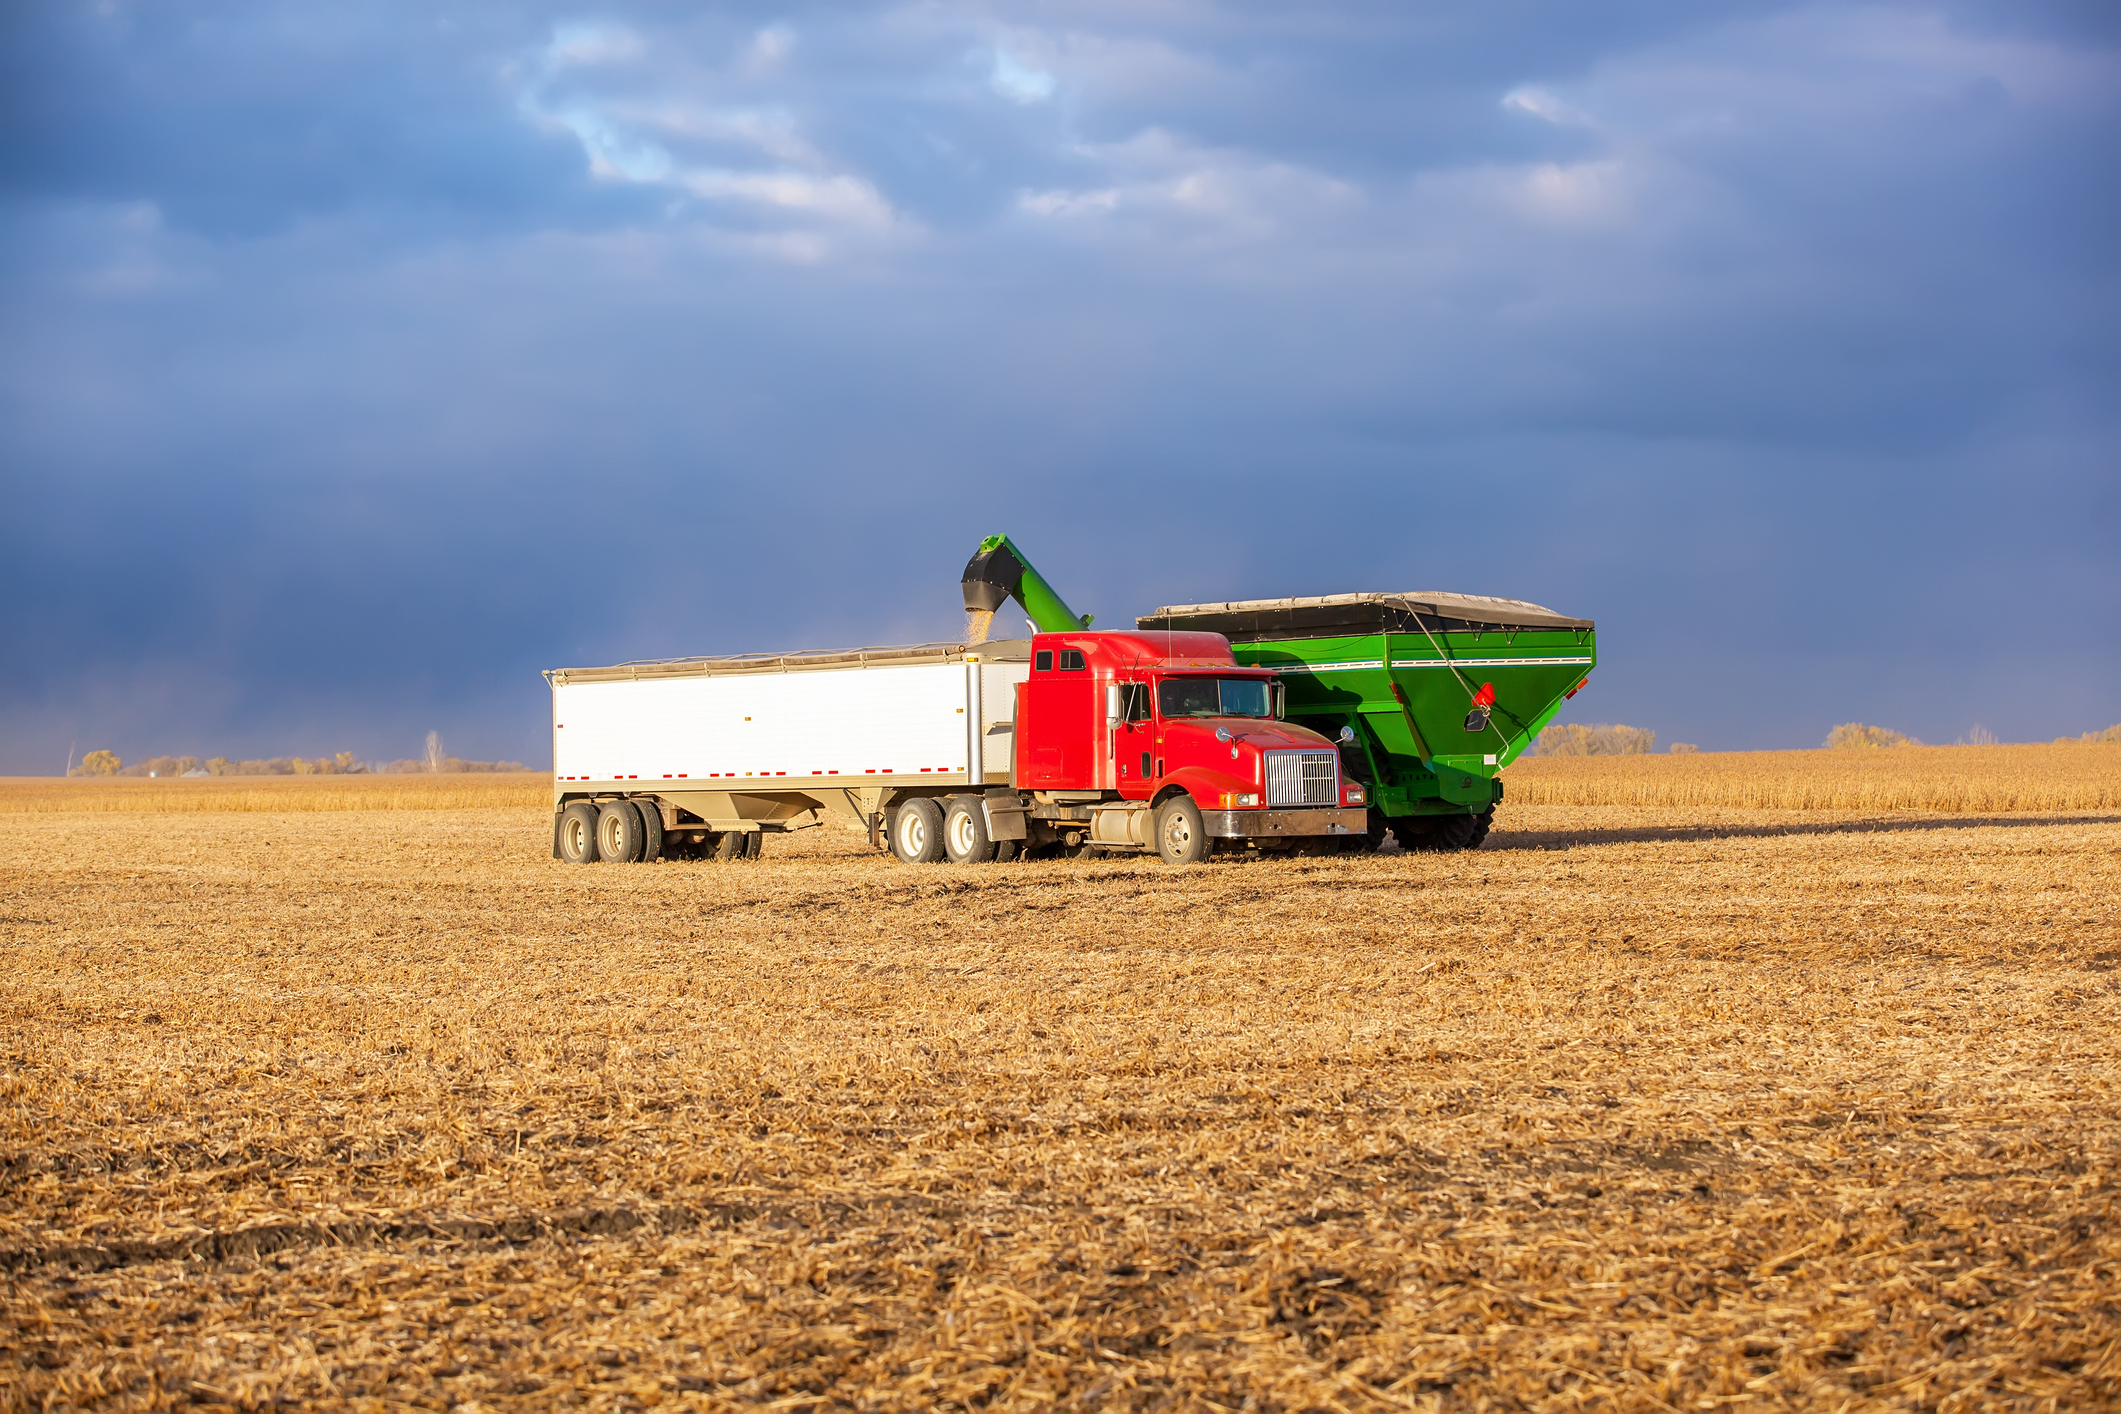 Grain-Cart-Filling-Semi-Truck-With-Soybeans-521289473_2122x1415 (1).jpeg